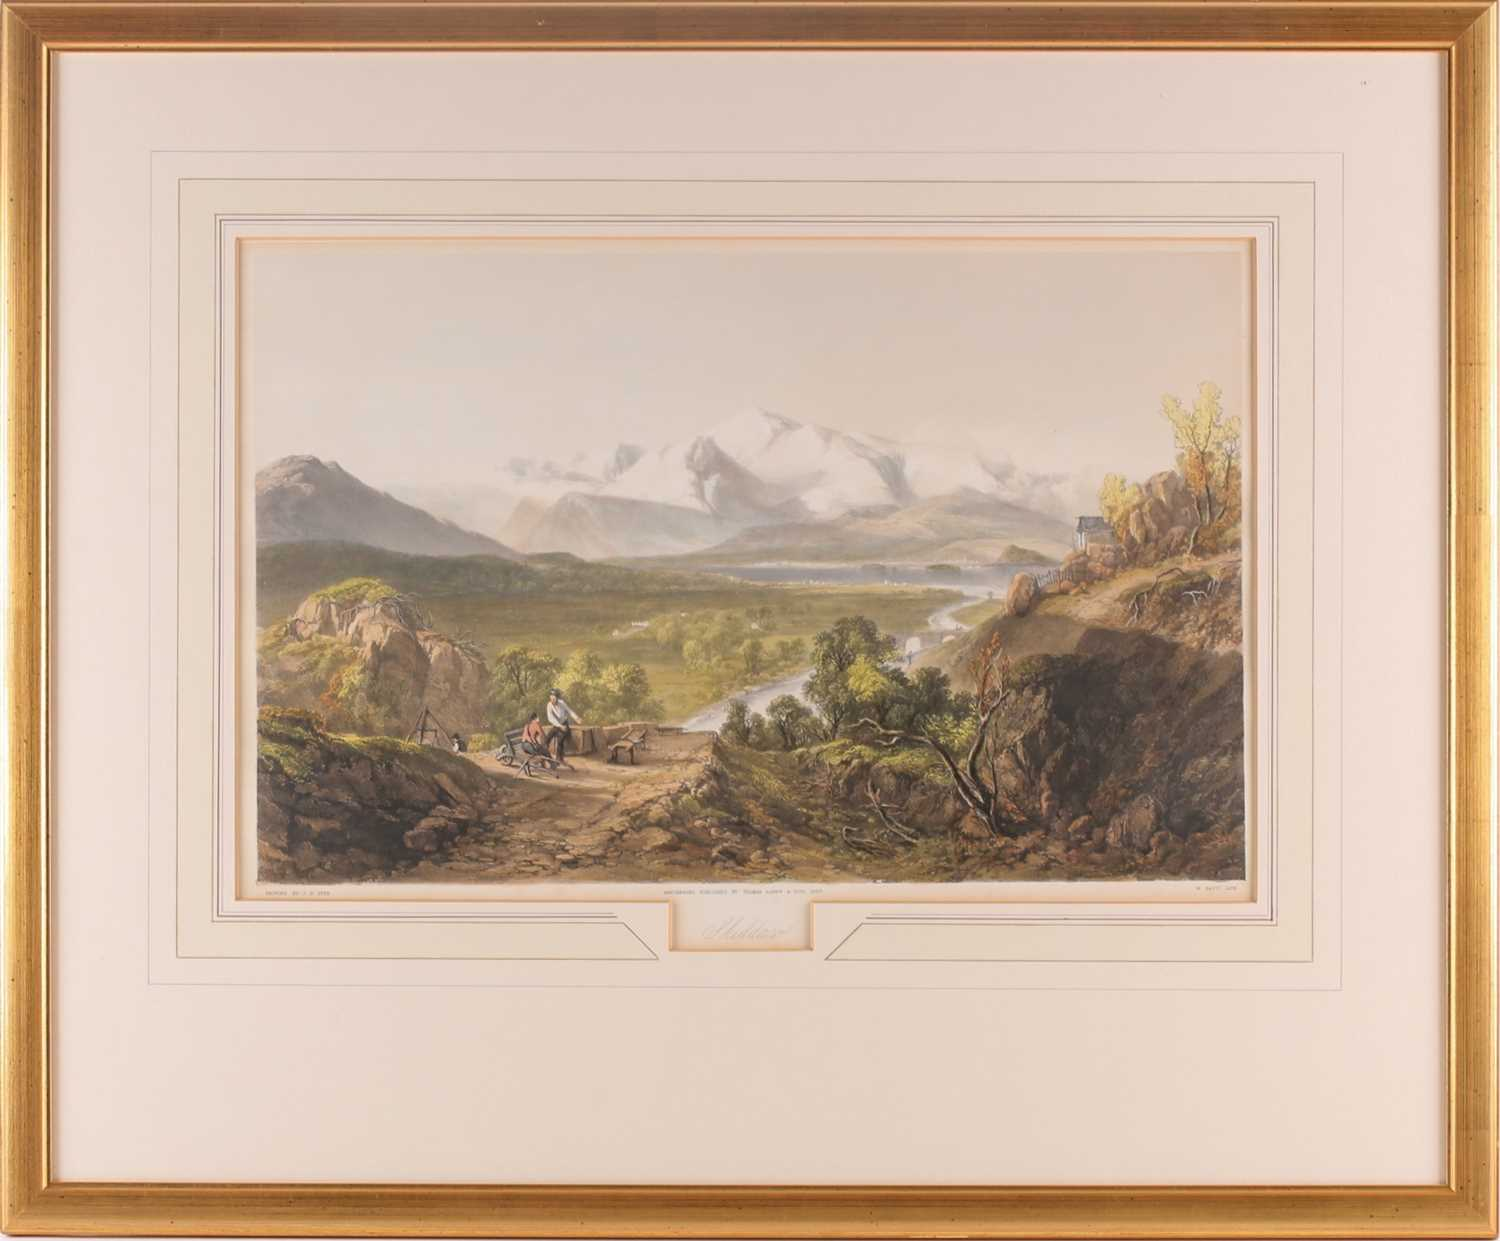 Gauci after J B Pyne, Skiddaw, Buttermere, The Vales of Emmerdale and Buttermere, The Rydal Water, - Image 3 of 13